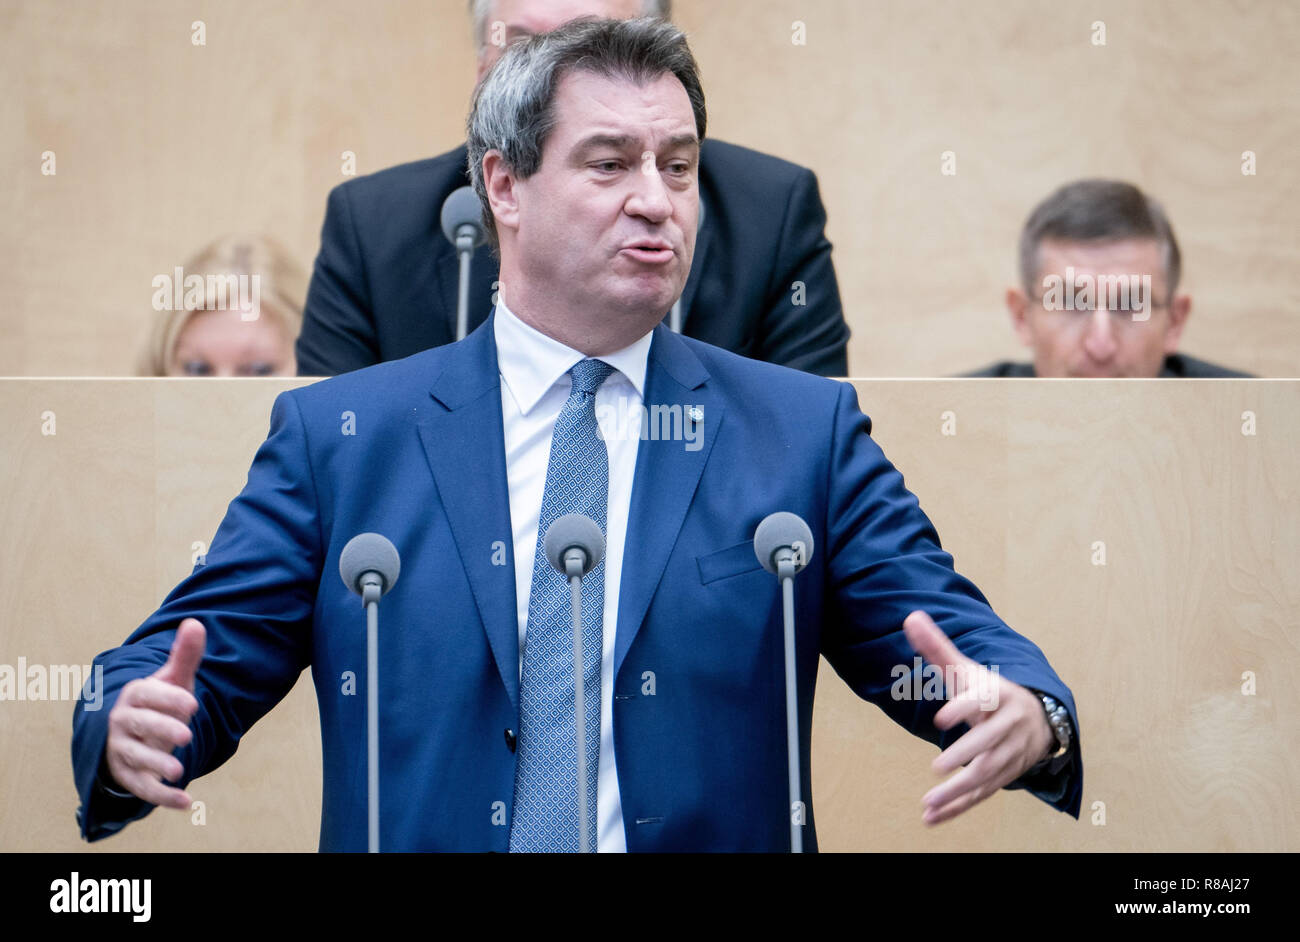 Berlin, Germany. 14th Dec, 2018. Markus Söder (CSU), Prime Minister of Bavaria, speaks during the session of the Bundesrat. In the last session of the year, the regional chamber finally deals with several laws of the grand coalition, including tightening the rent brake, more further training, higher nursing care contributions in 2019, postponement of the ban on anaesthetised piglet castration. Credit: Kay Nietfeld/dpa/Alamy Live News - Stock Image